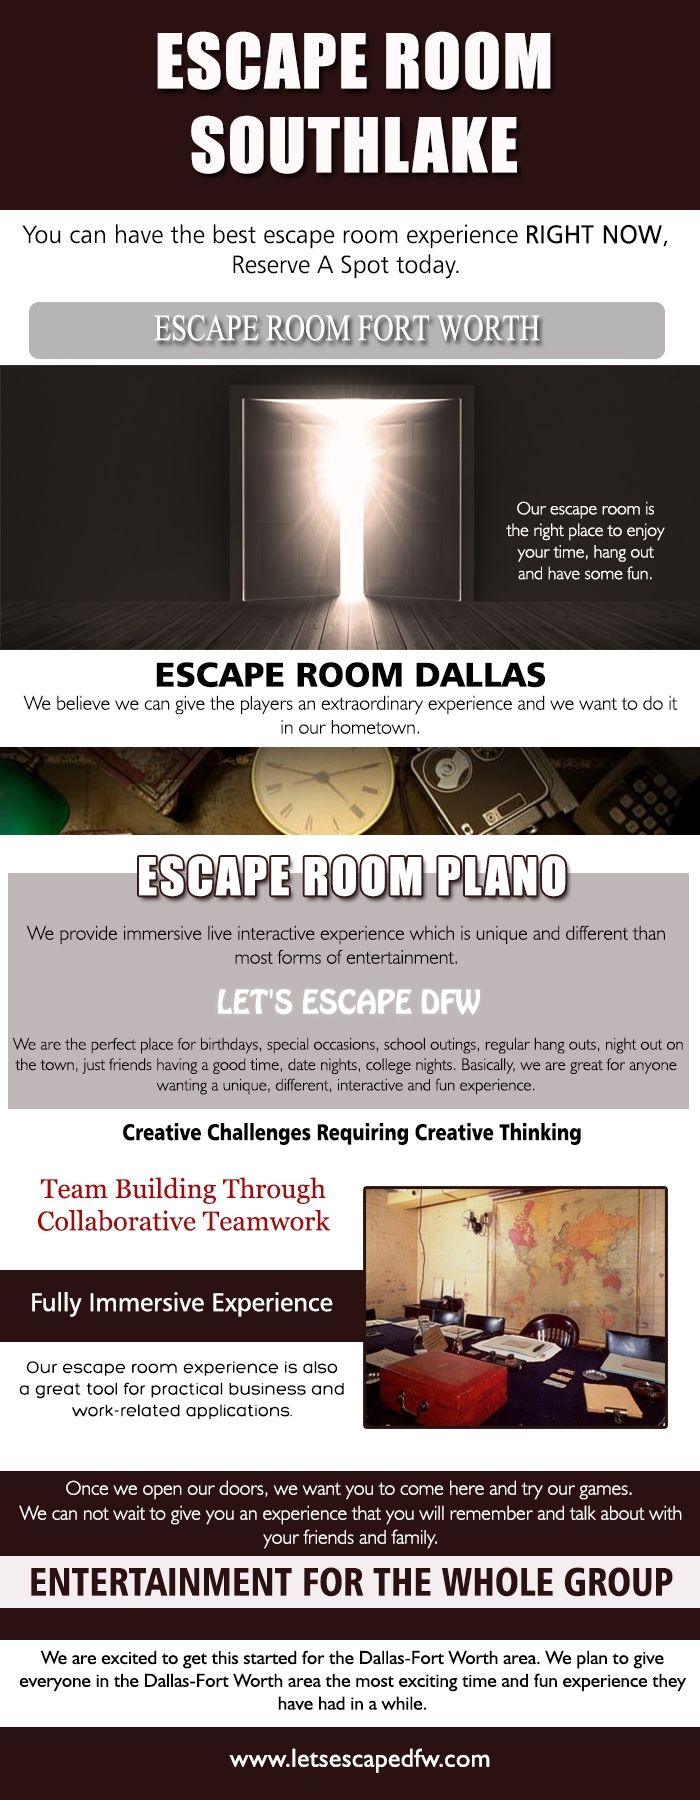 Escape Room Dallas Site games w - escapegames | ello